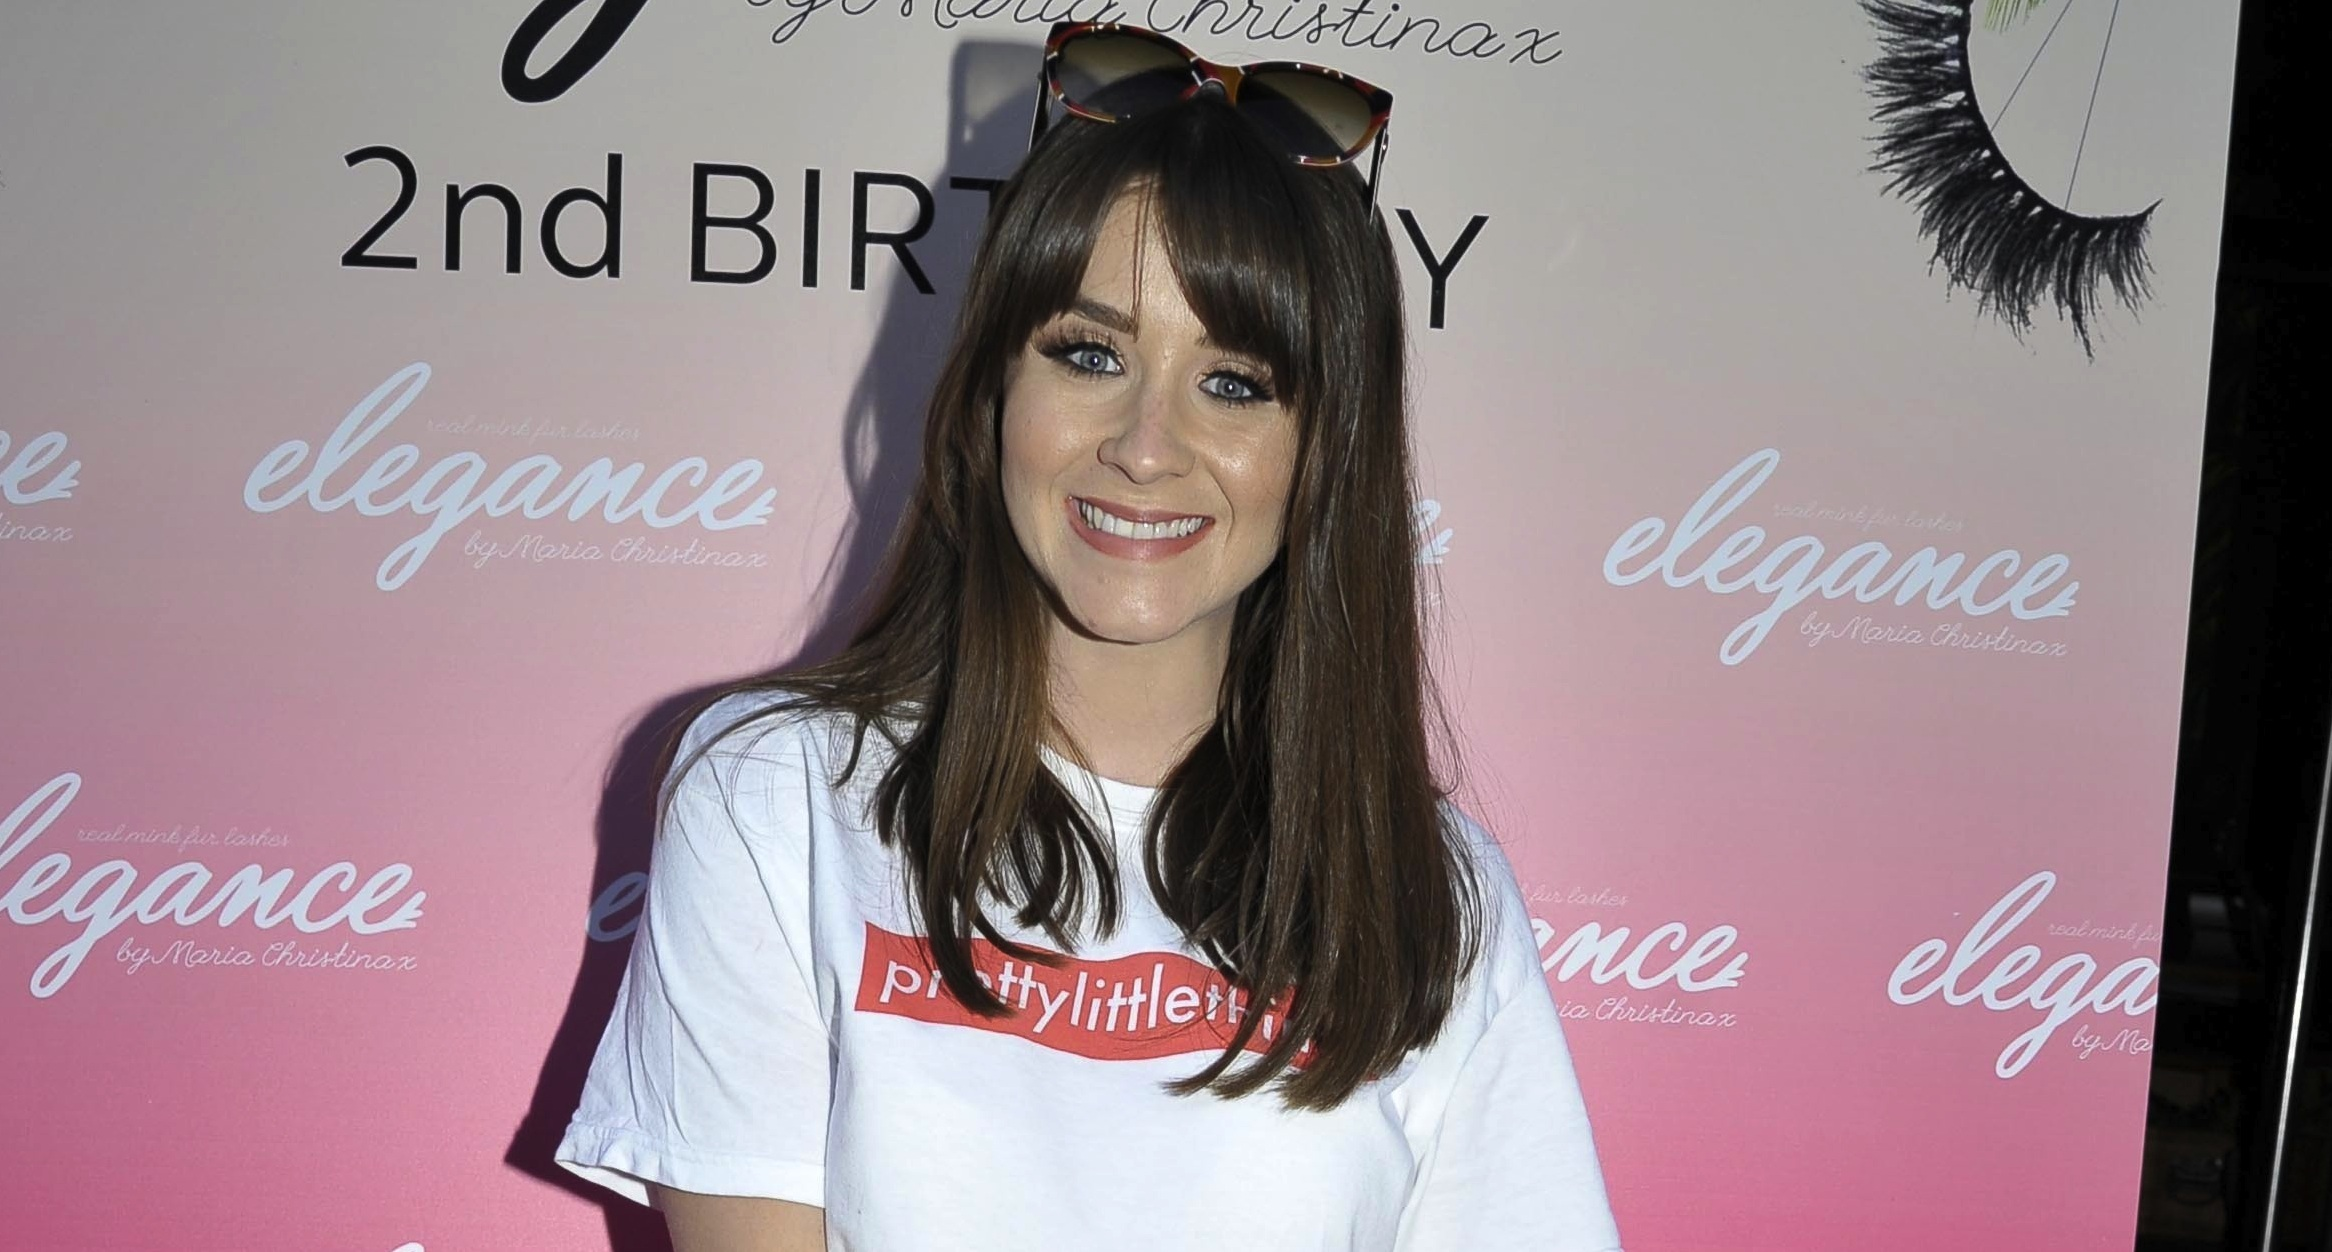 Coronation Street star Brooke Vincent posts emotional tribute to the midwife who delivered her baby